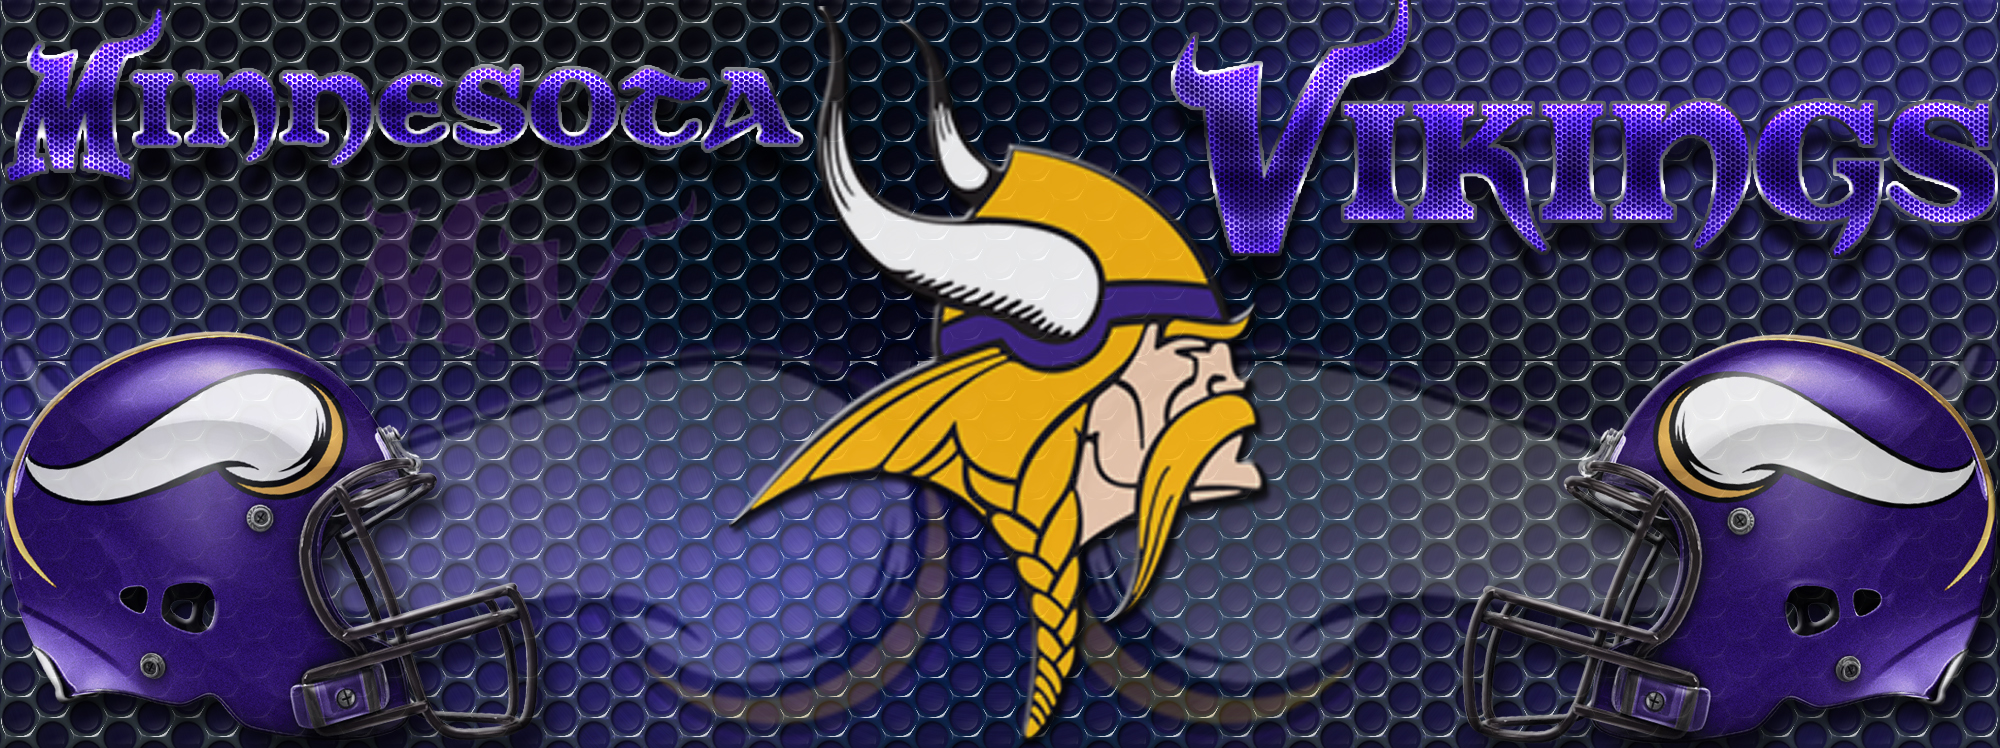 Wallpapers By Wicked Shadows: Minnesota Vikings Heavy